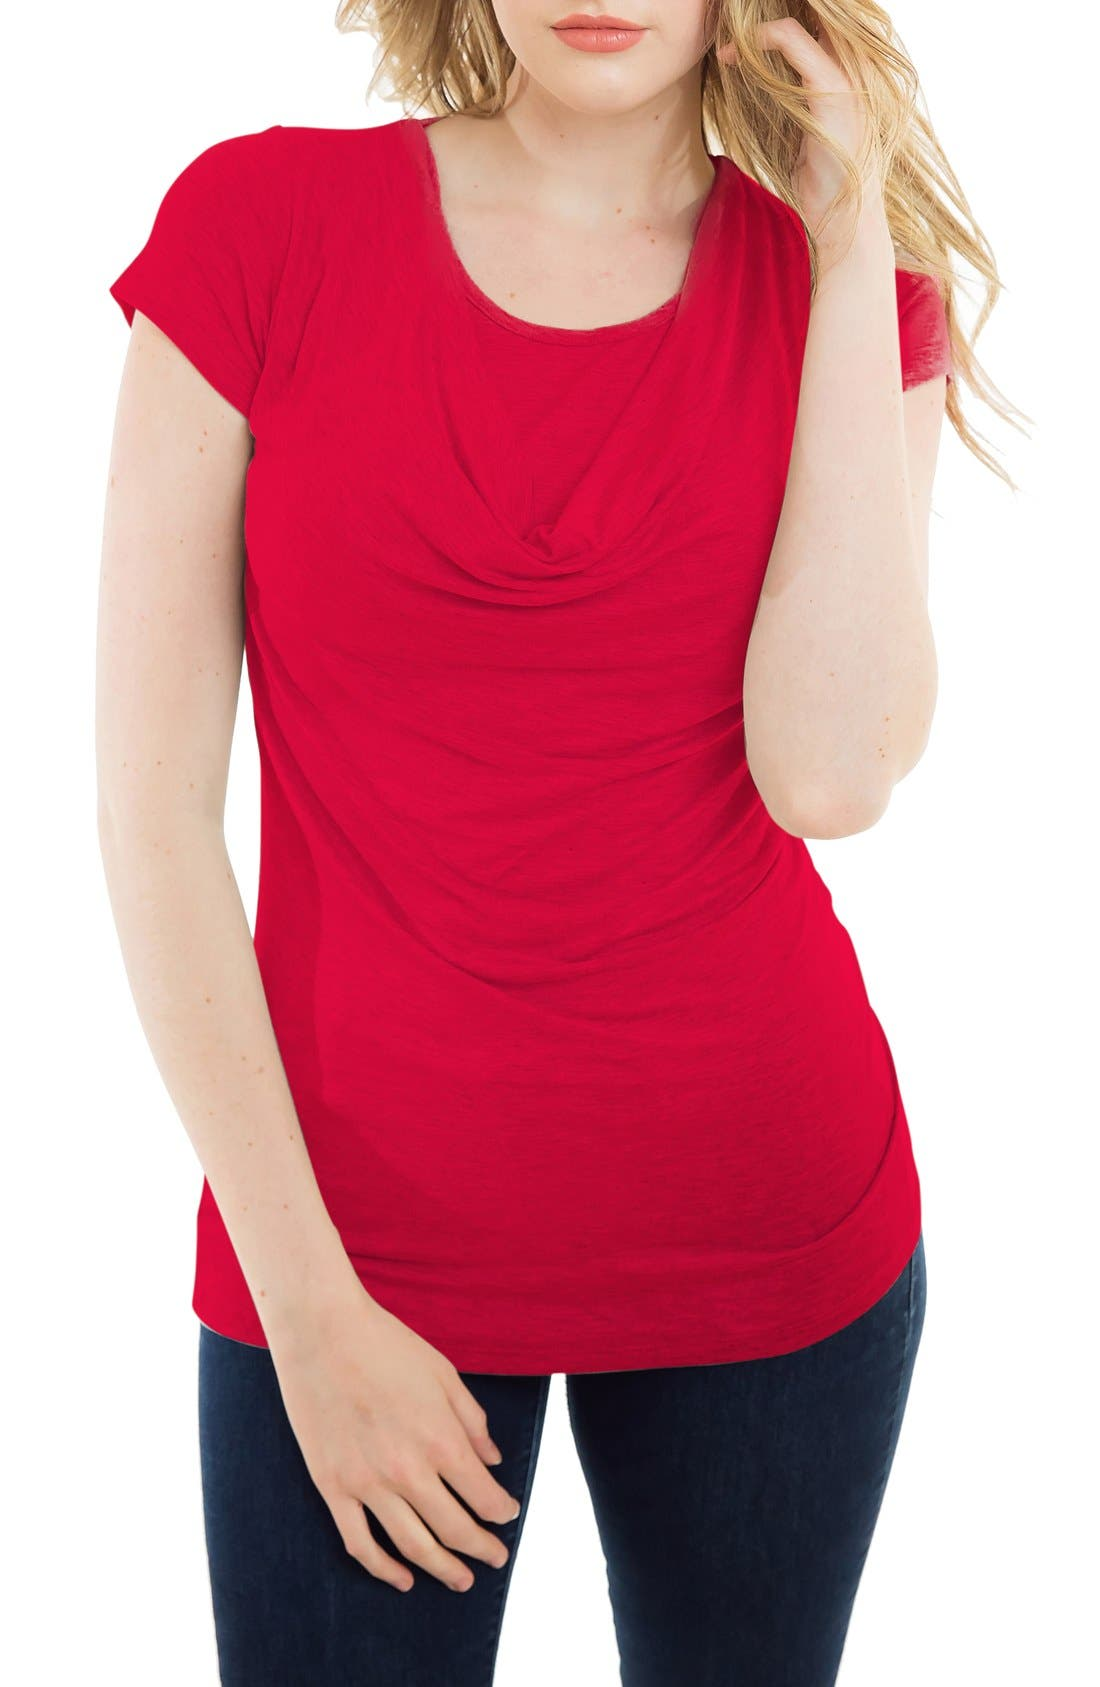 Cowl Neck Short Sleeve Nursing Top,                             Main thumbnail 1, color,                             600